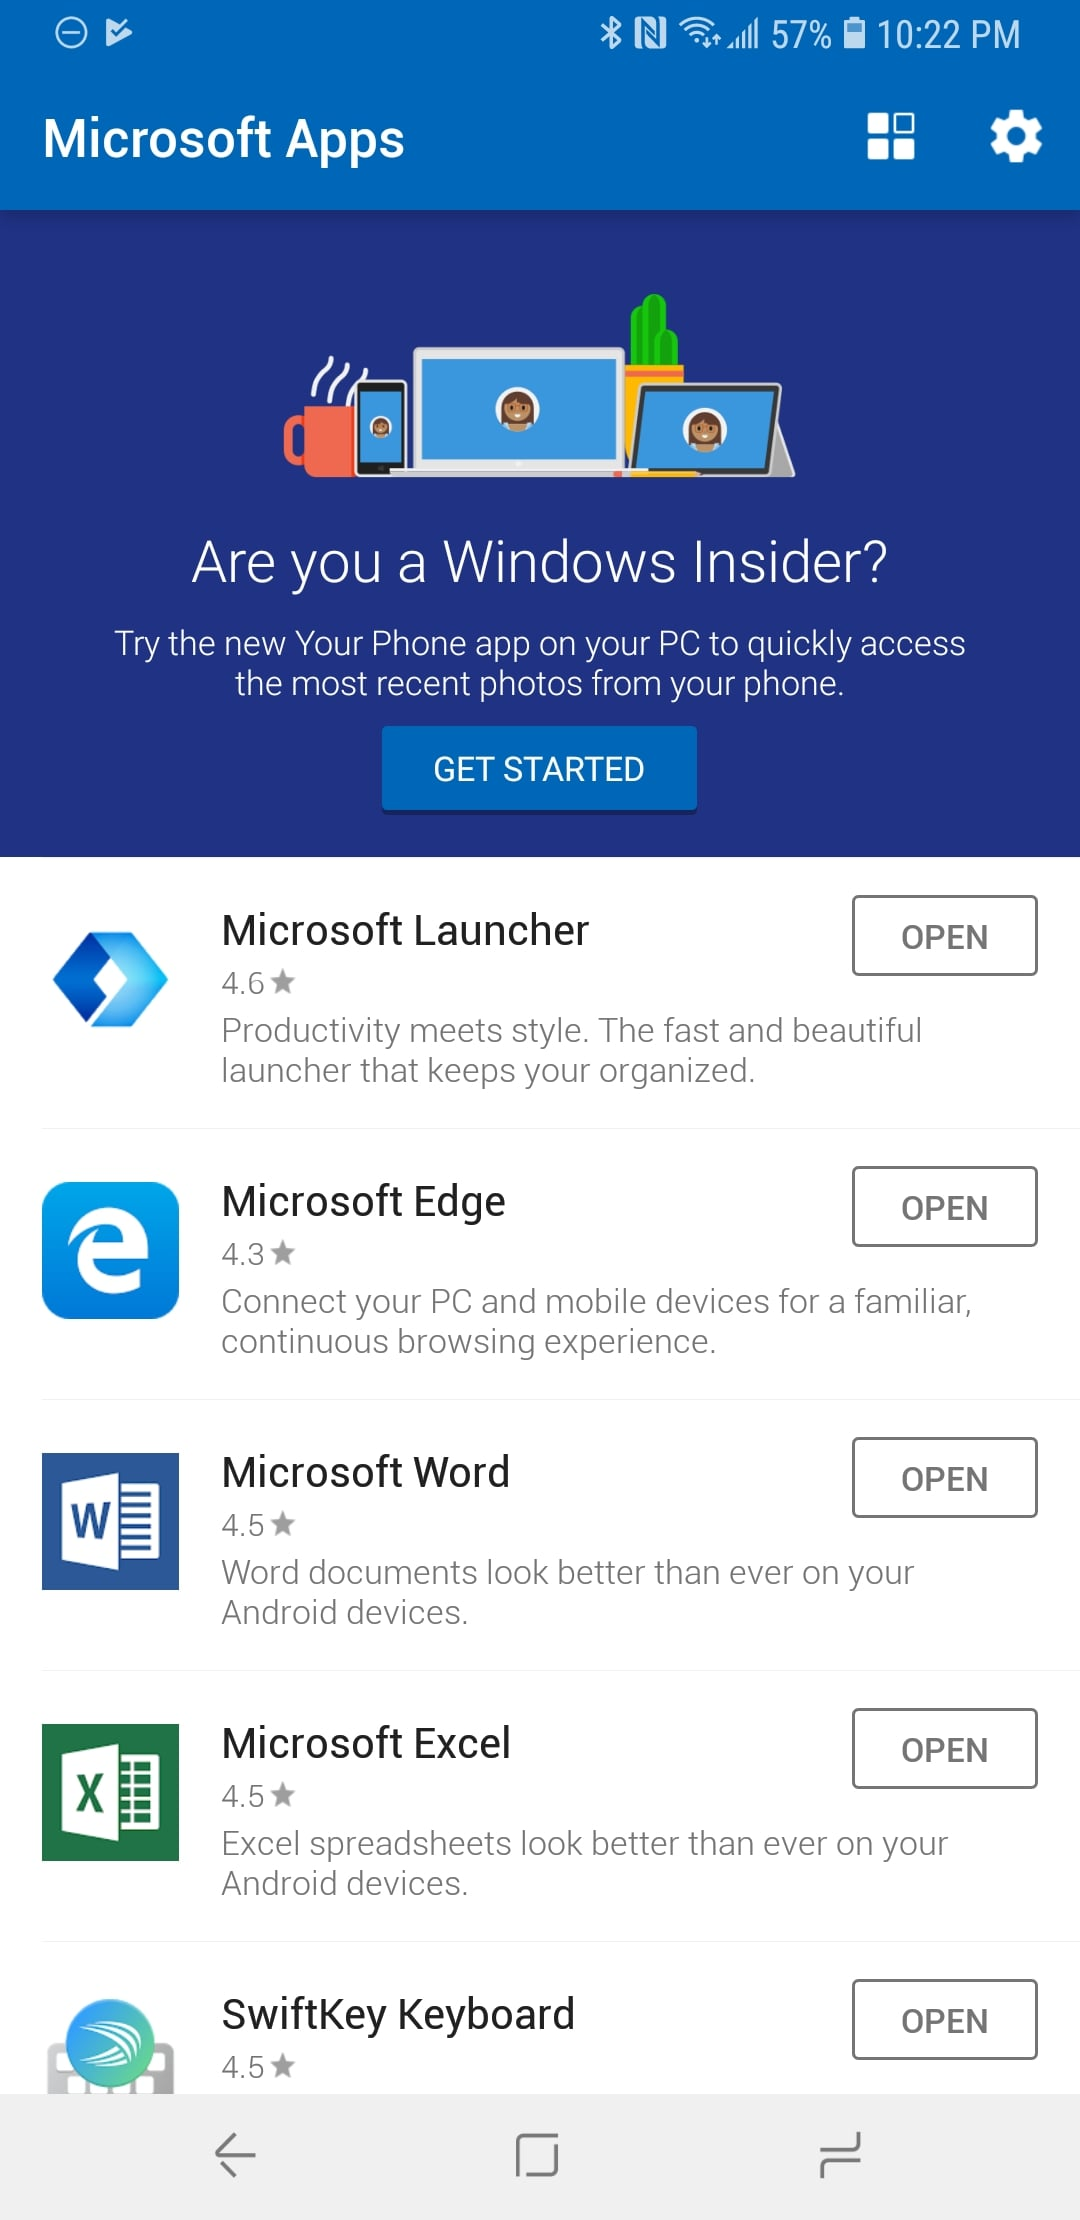 Microsoft Apps App on Android